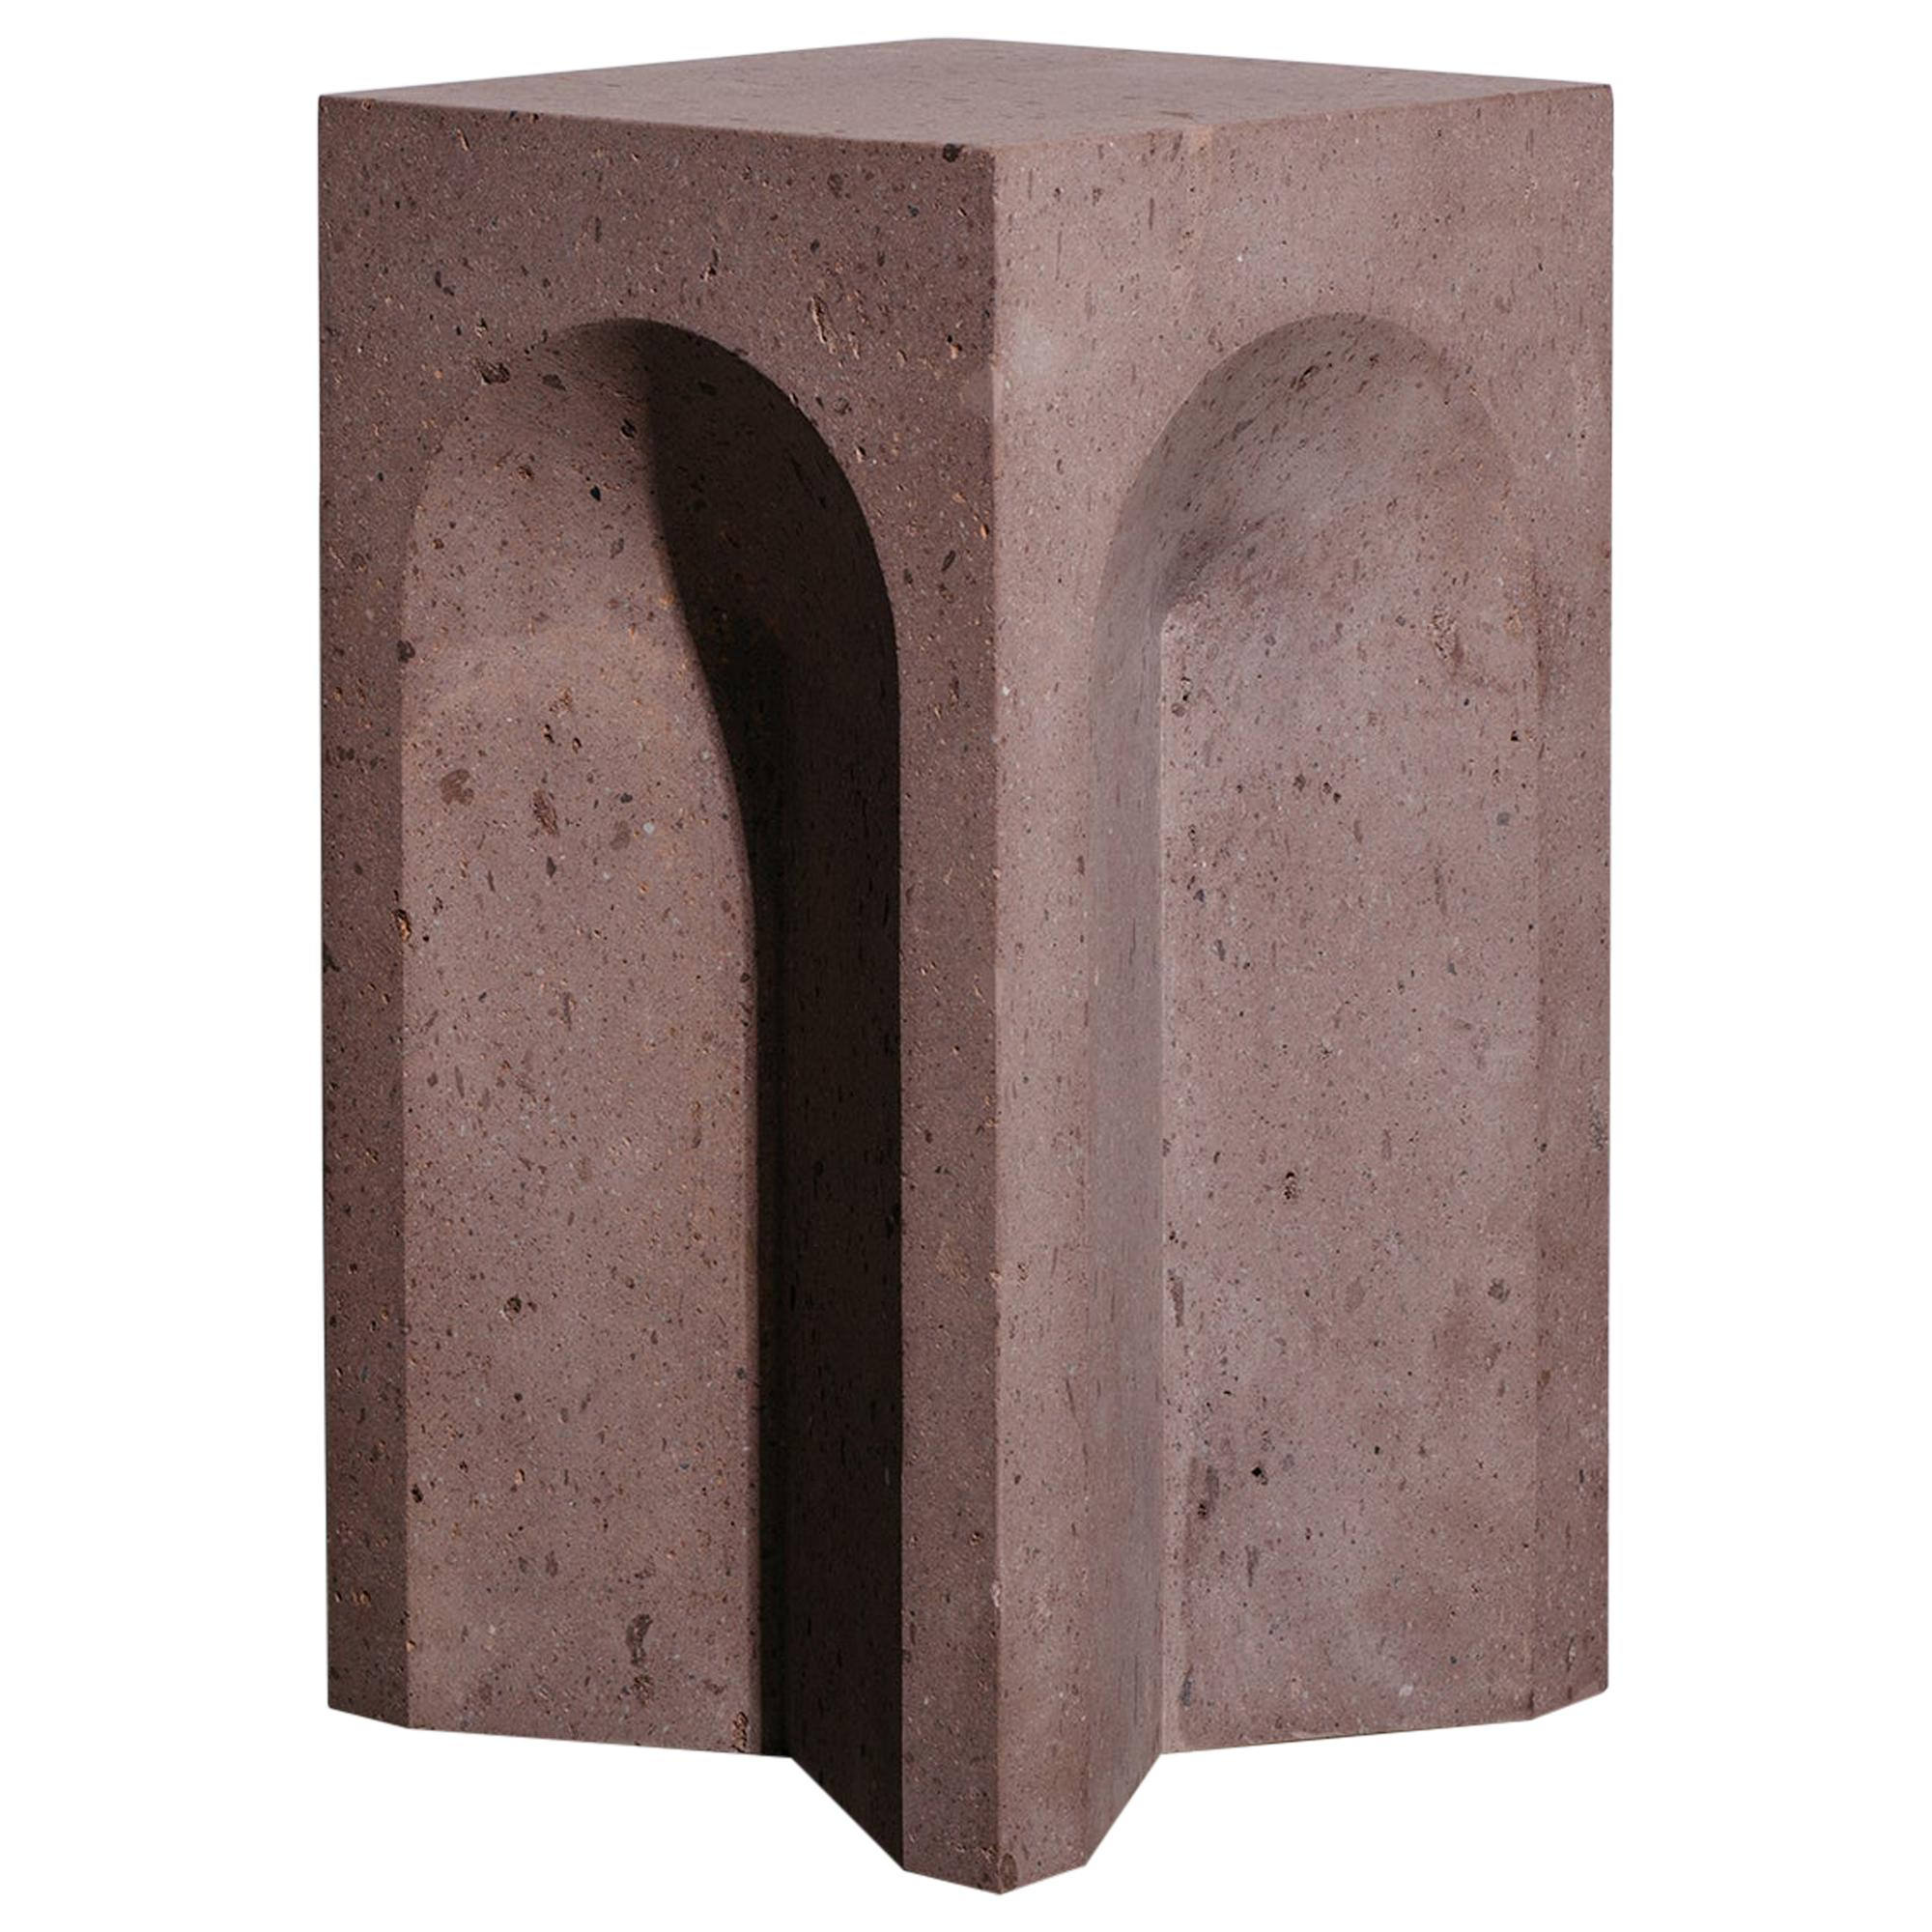 The Source Side Table No.2 in Pink Tuff